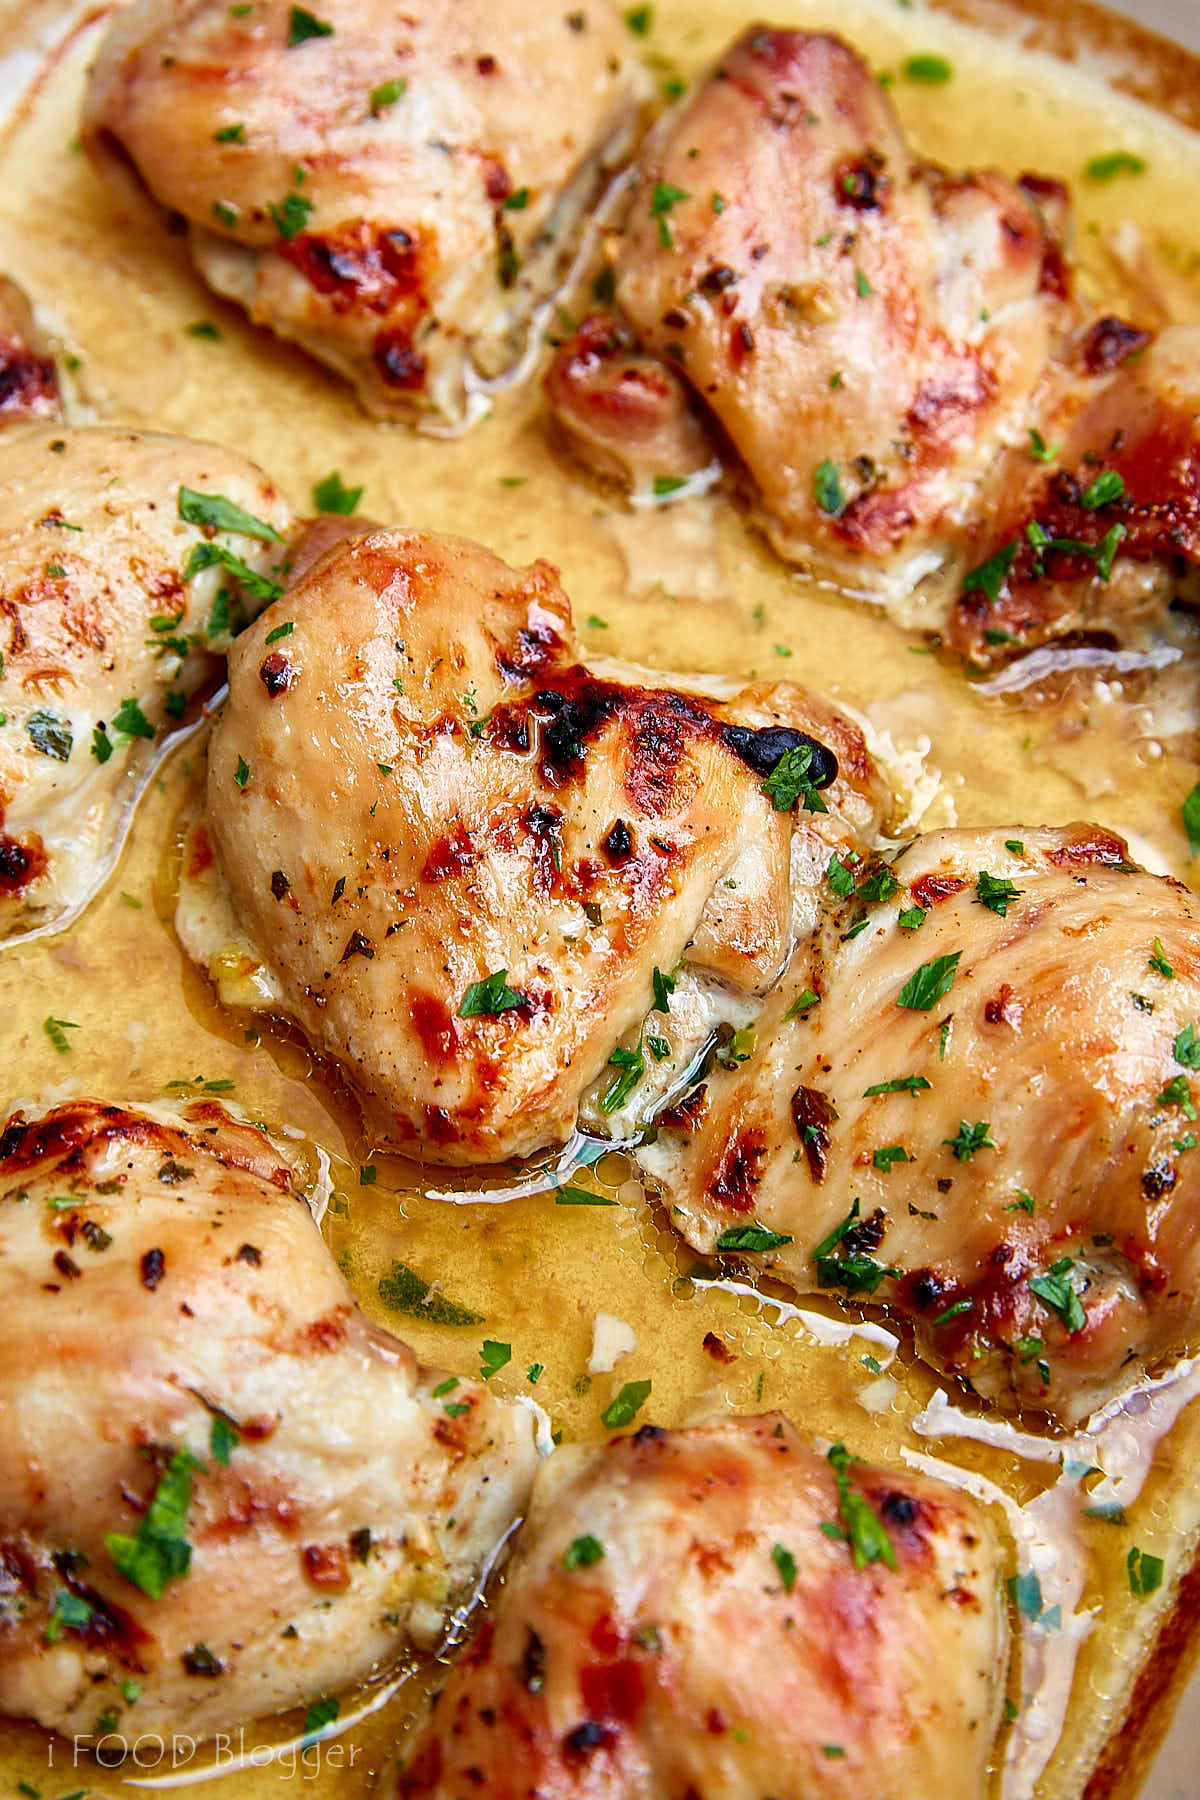 Baked chicken thighs, boneless and skinless, seasoned with maple syrup, apple cider vinegar, garlic, fresh parsley and sesame oil. Tender, slightly sweet and tart, and absolutely delicious. | ifoodblogger.com